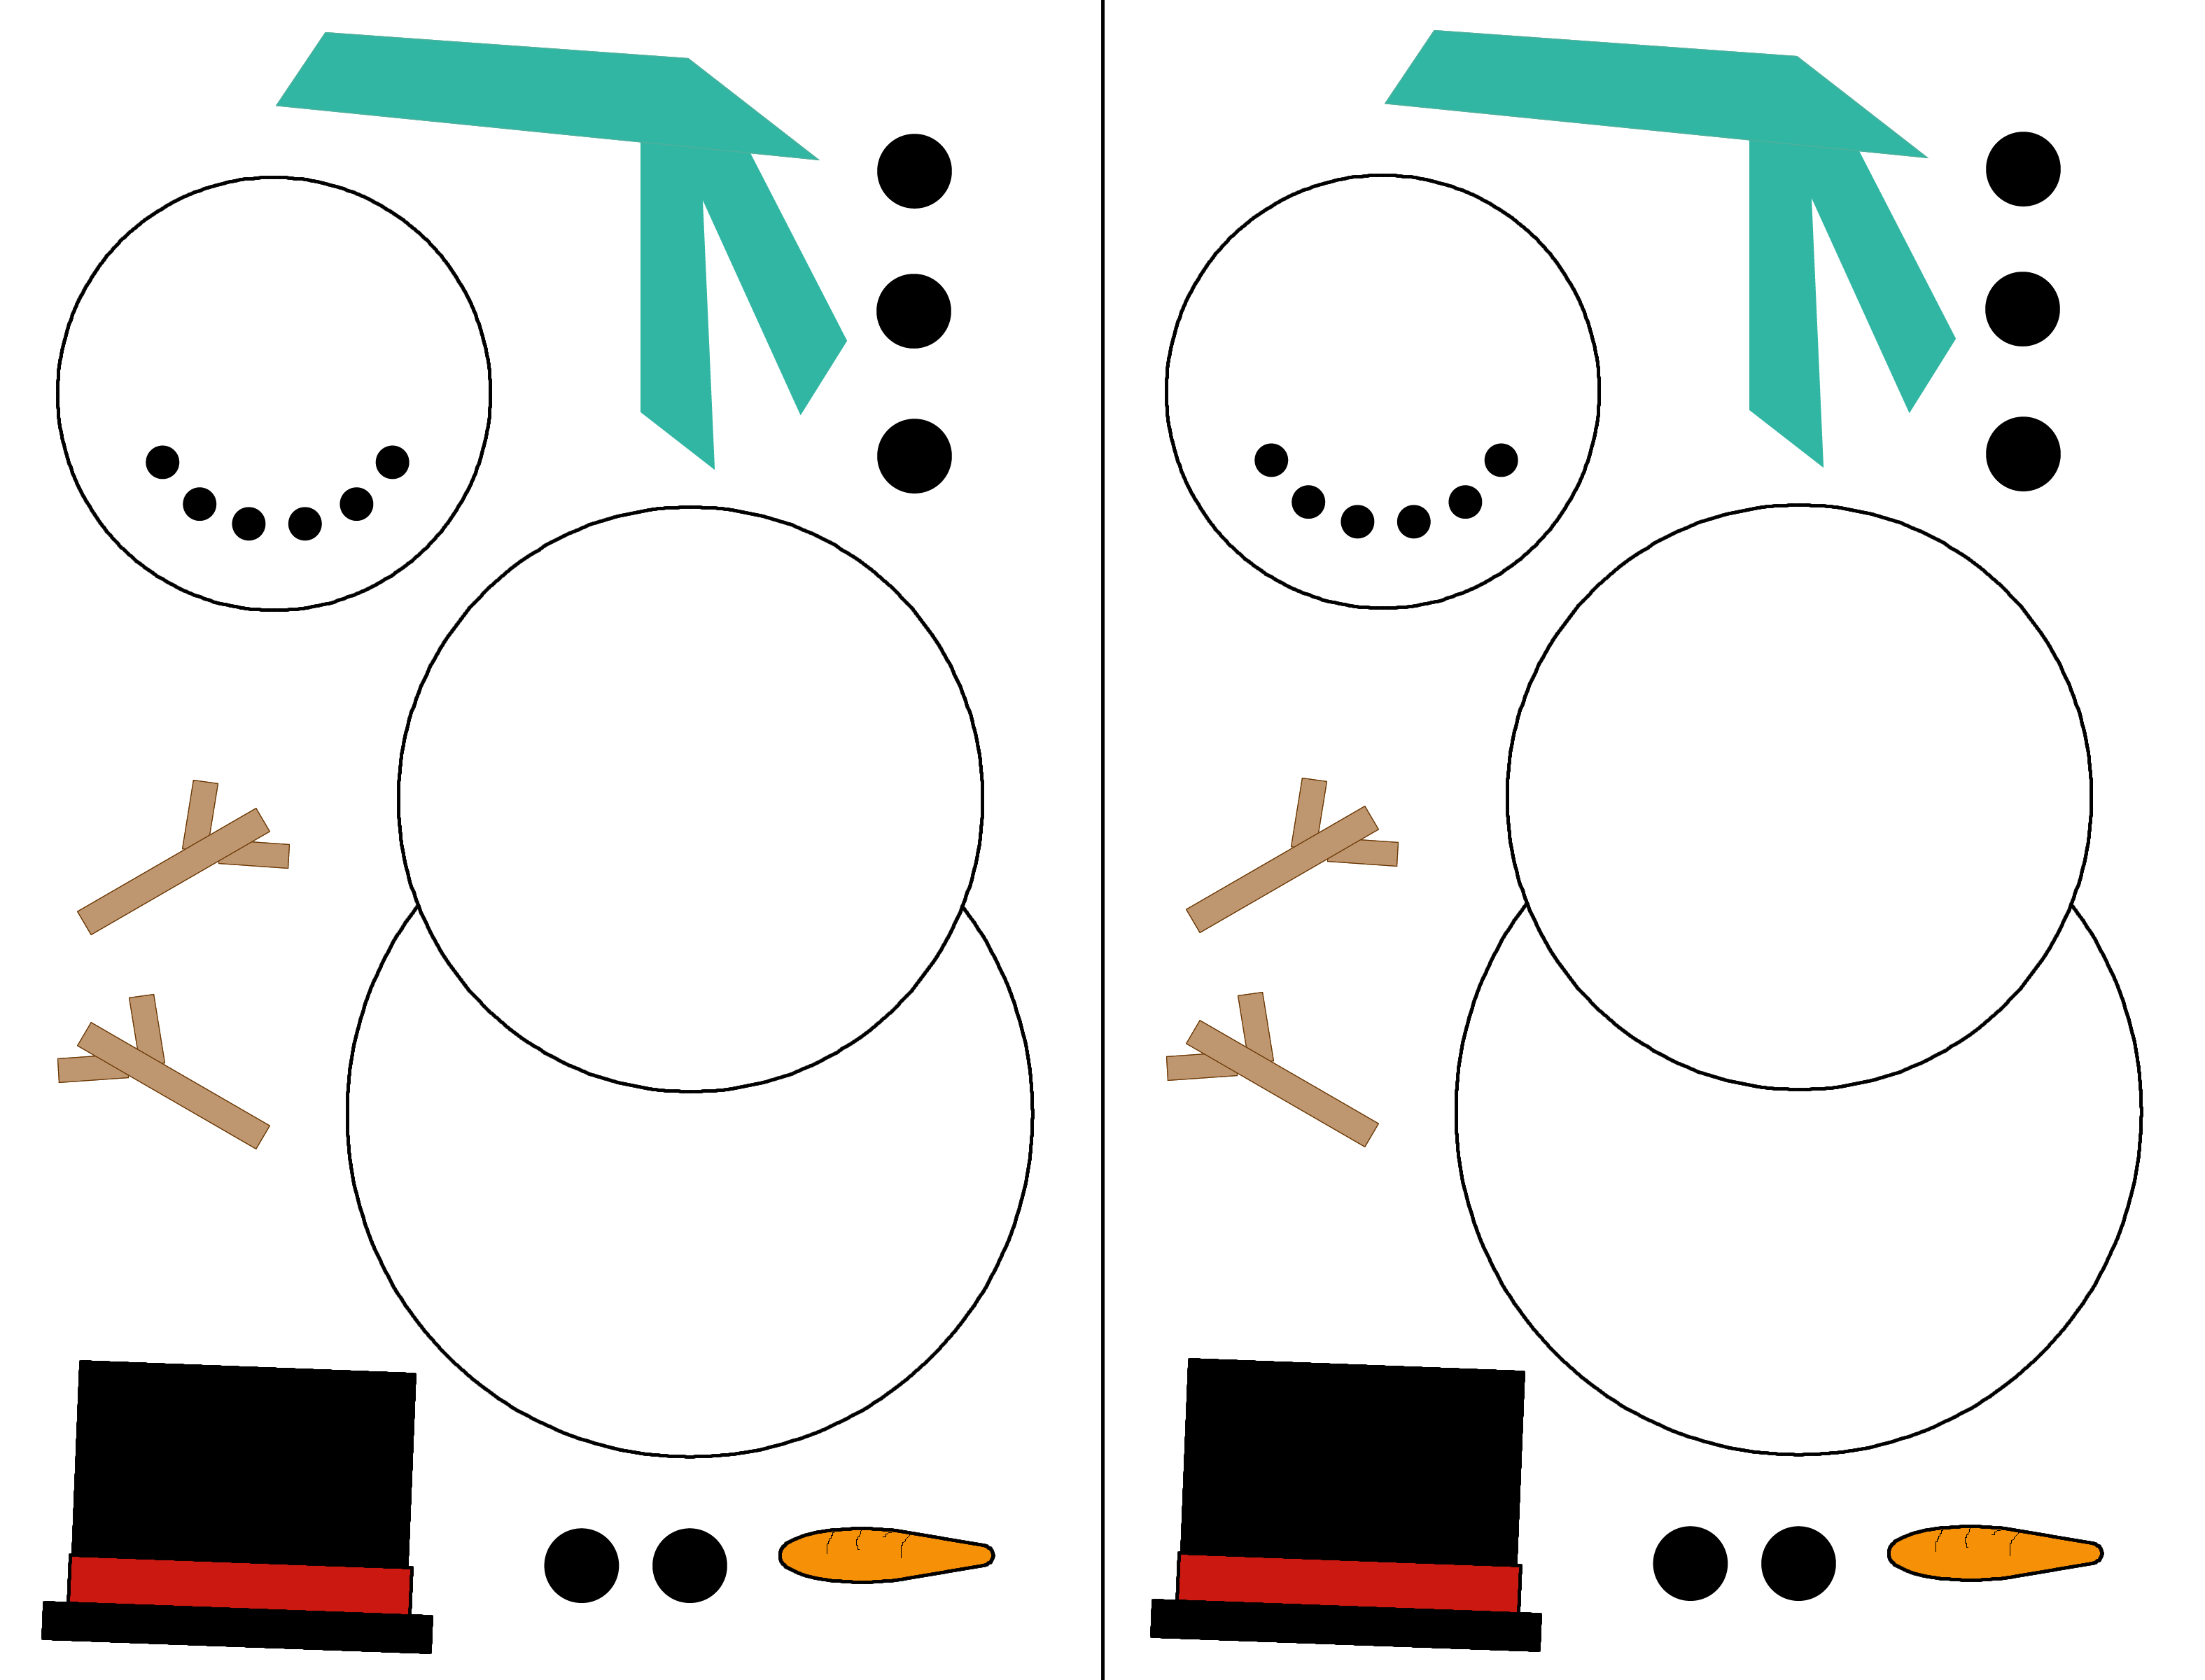 graphic relating to Snowman Printable identified as Spin a Snowman Free of charge Printable - Only Jonie